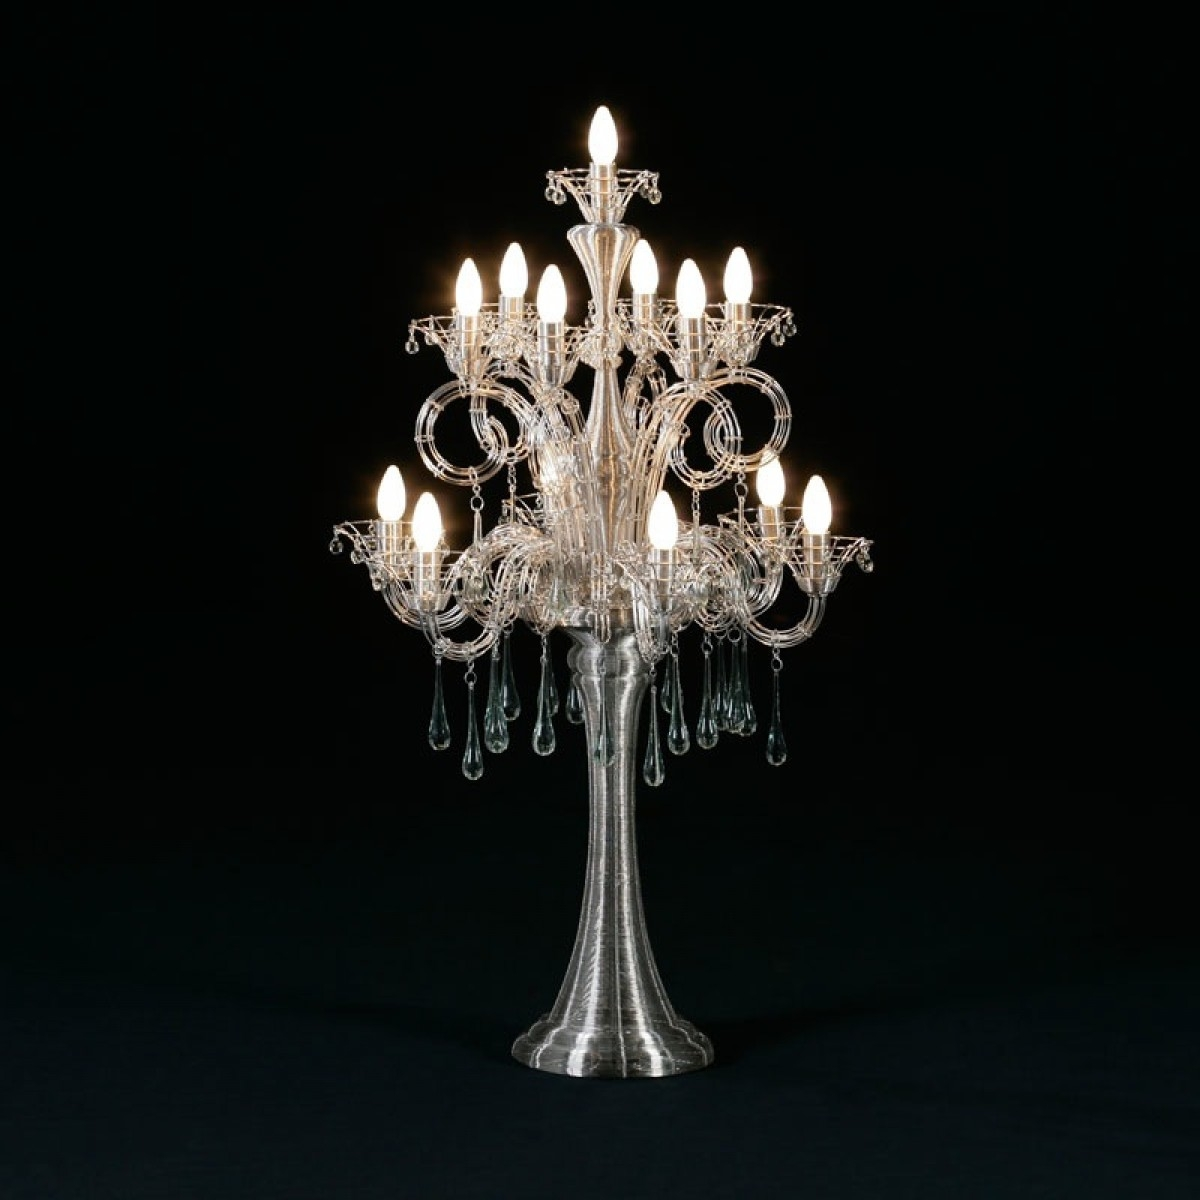 Table Chandelier New For Your Home Decoration Ideas With Table With Regard To Table Chandeliers (Image 11 of 15)